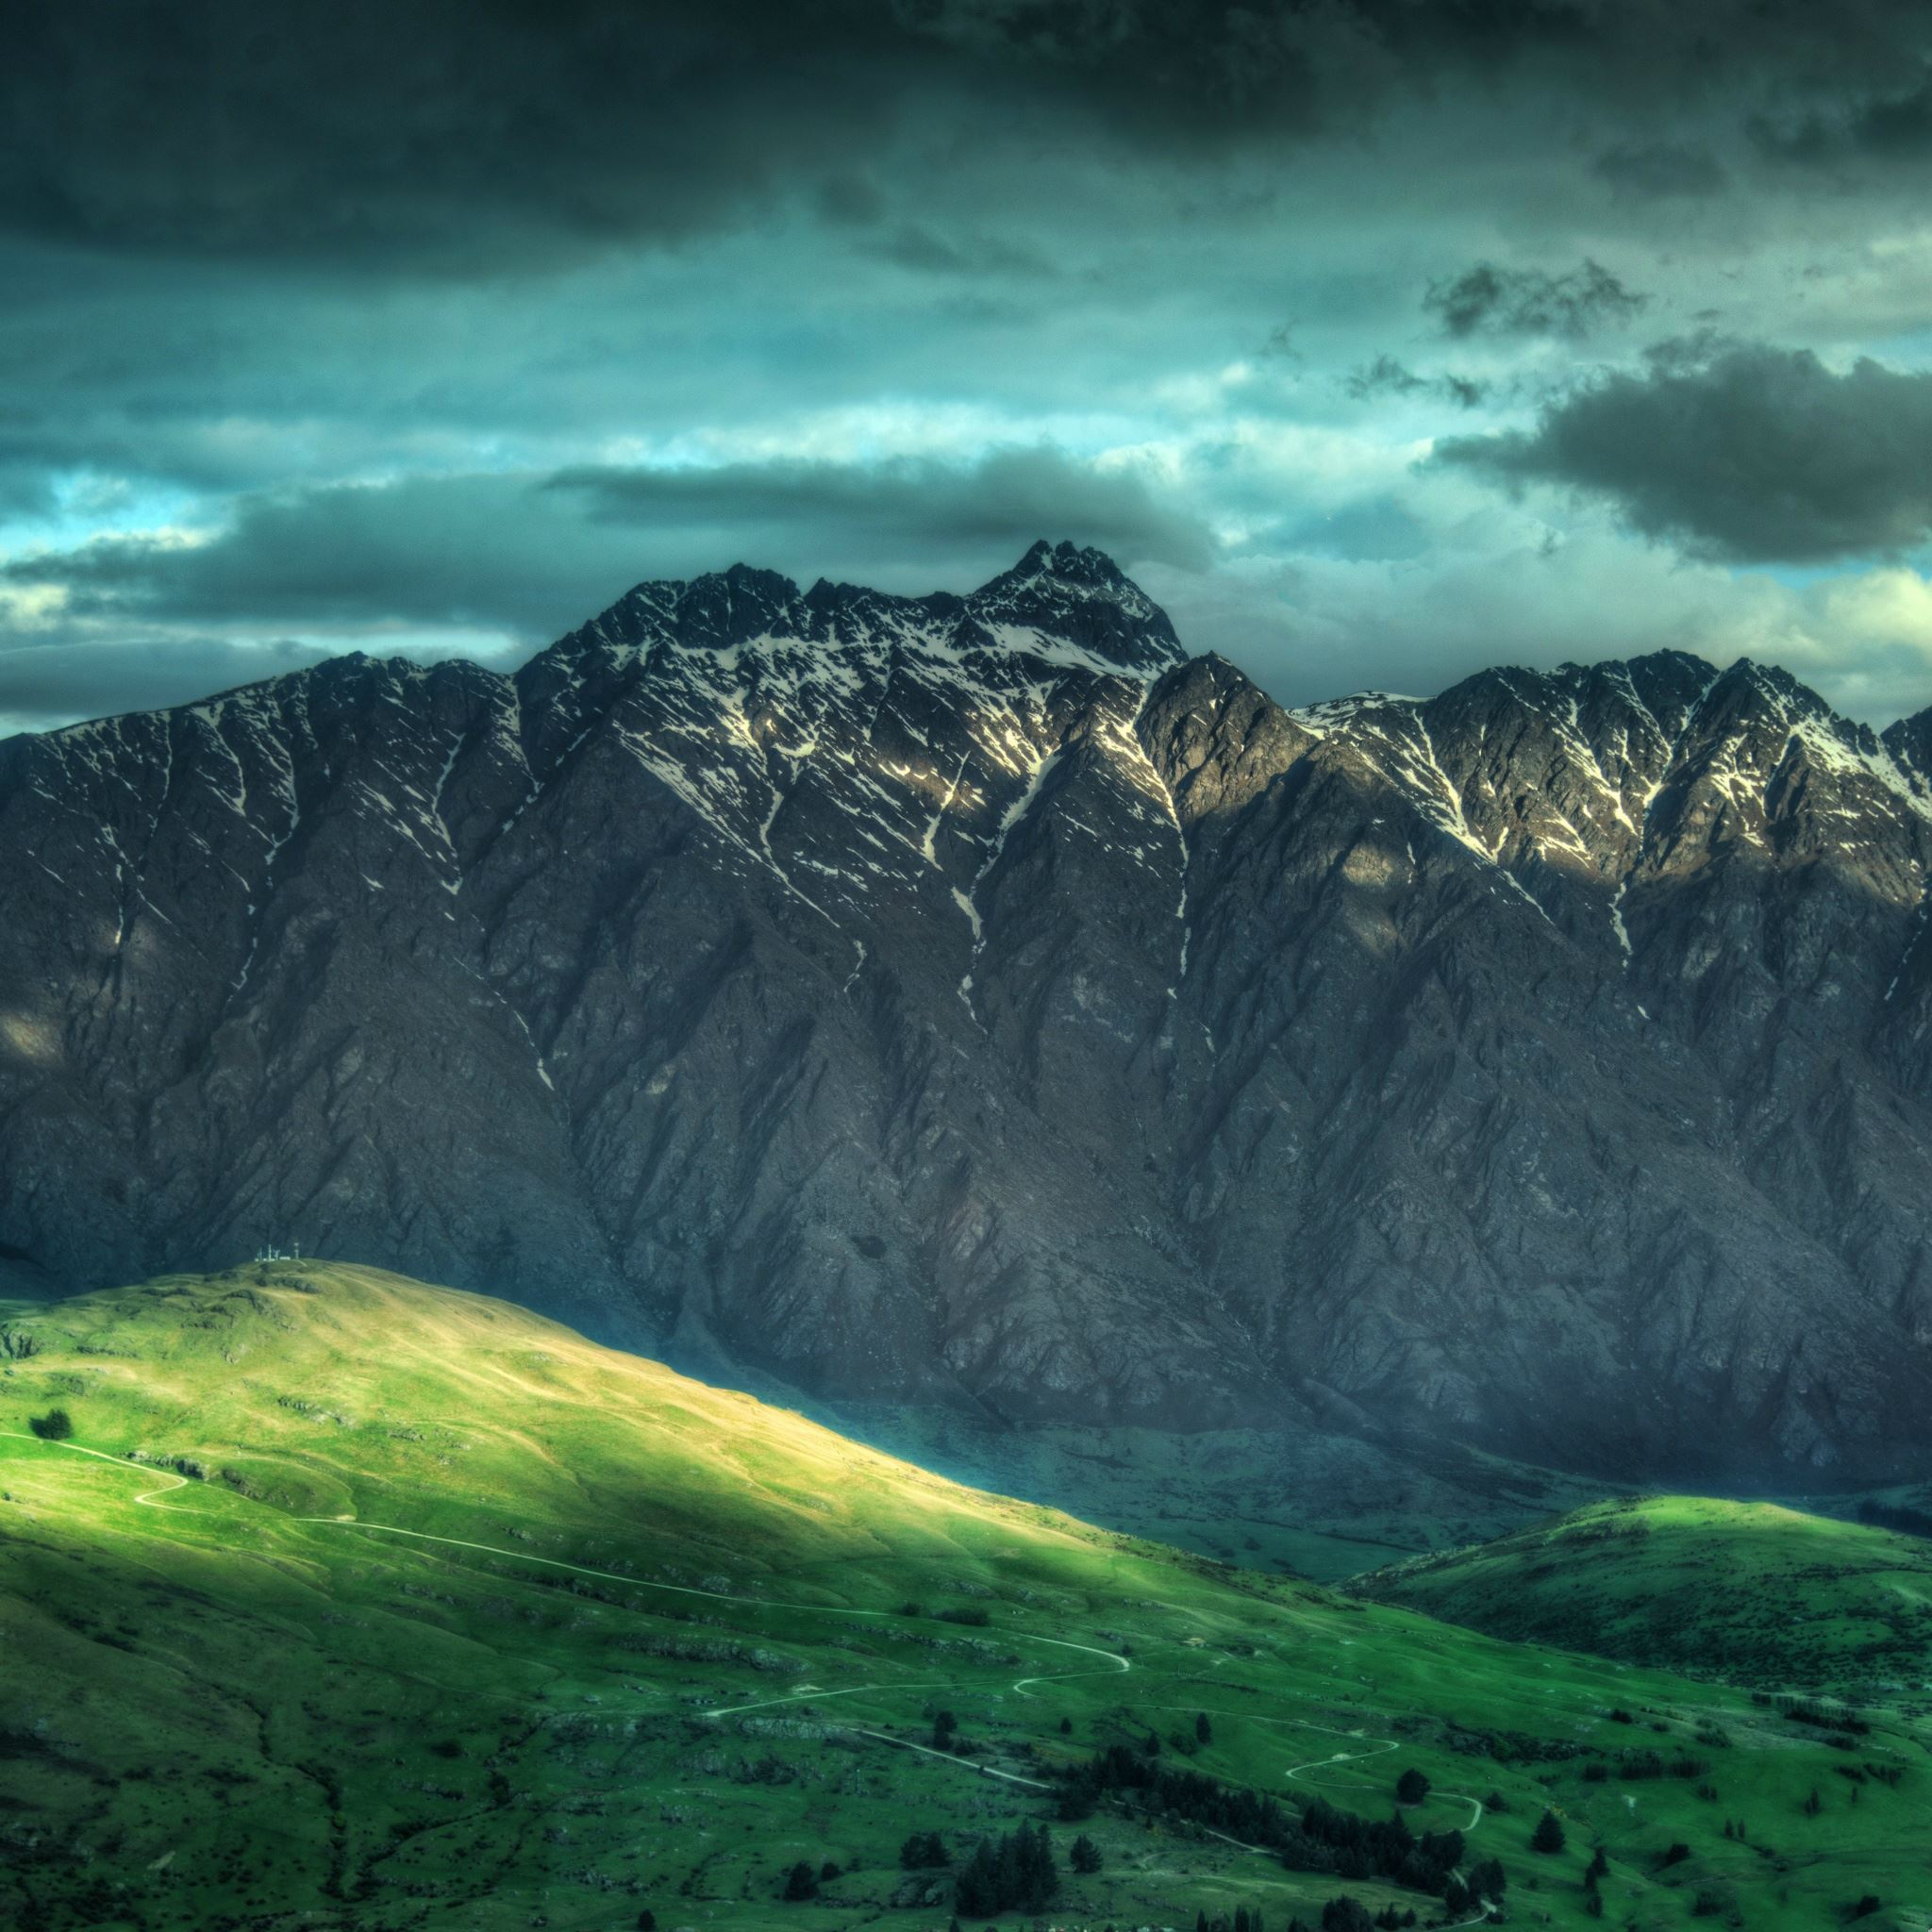 Mountains Landscape In New Zealand iPad Air wallpaper